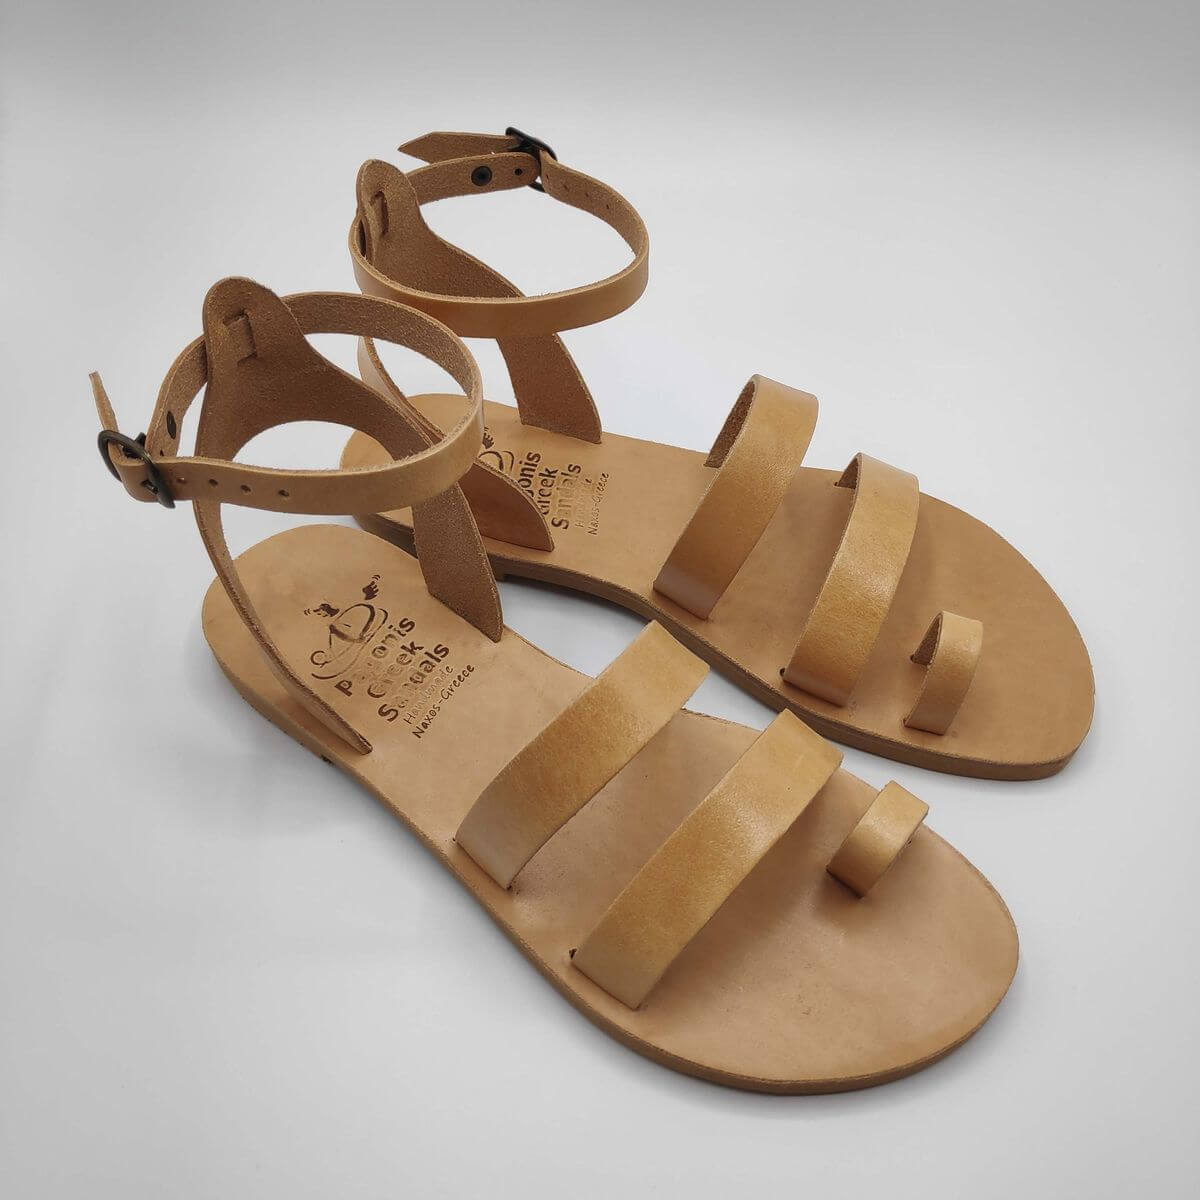 Natural Tan leather dressy sandals with two straps, toe ring and high ankle strap, side view